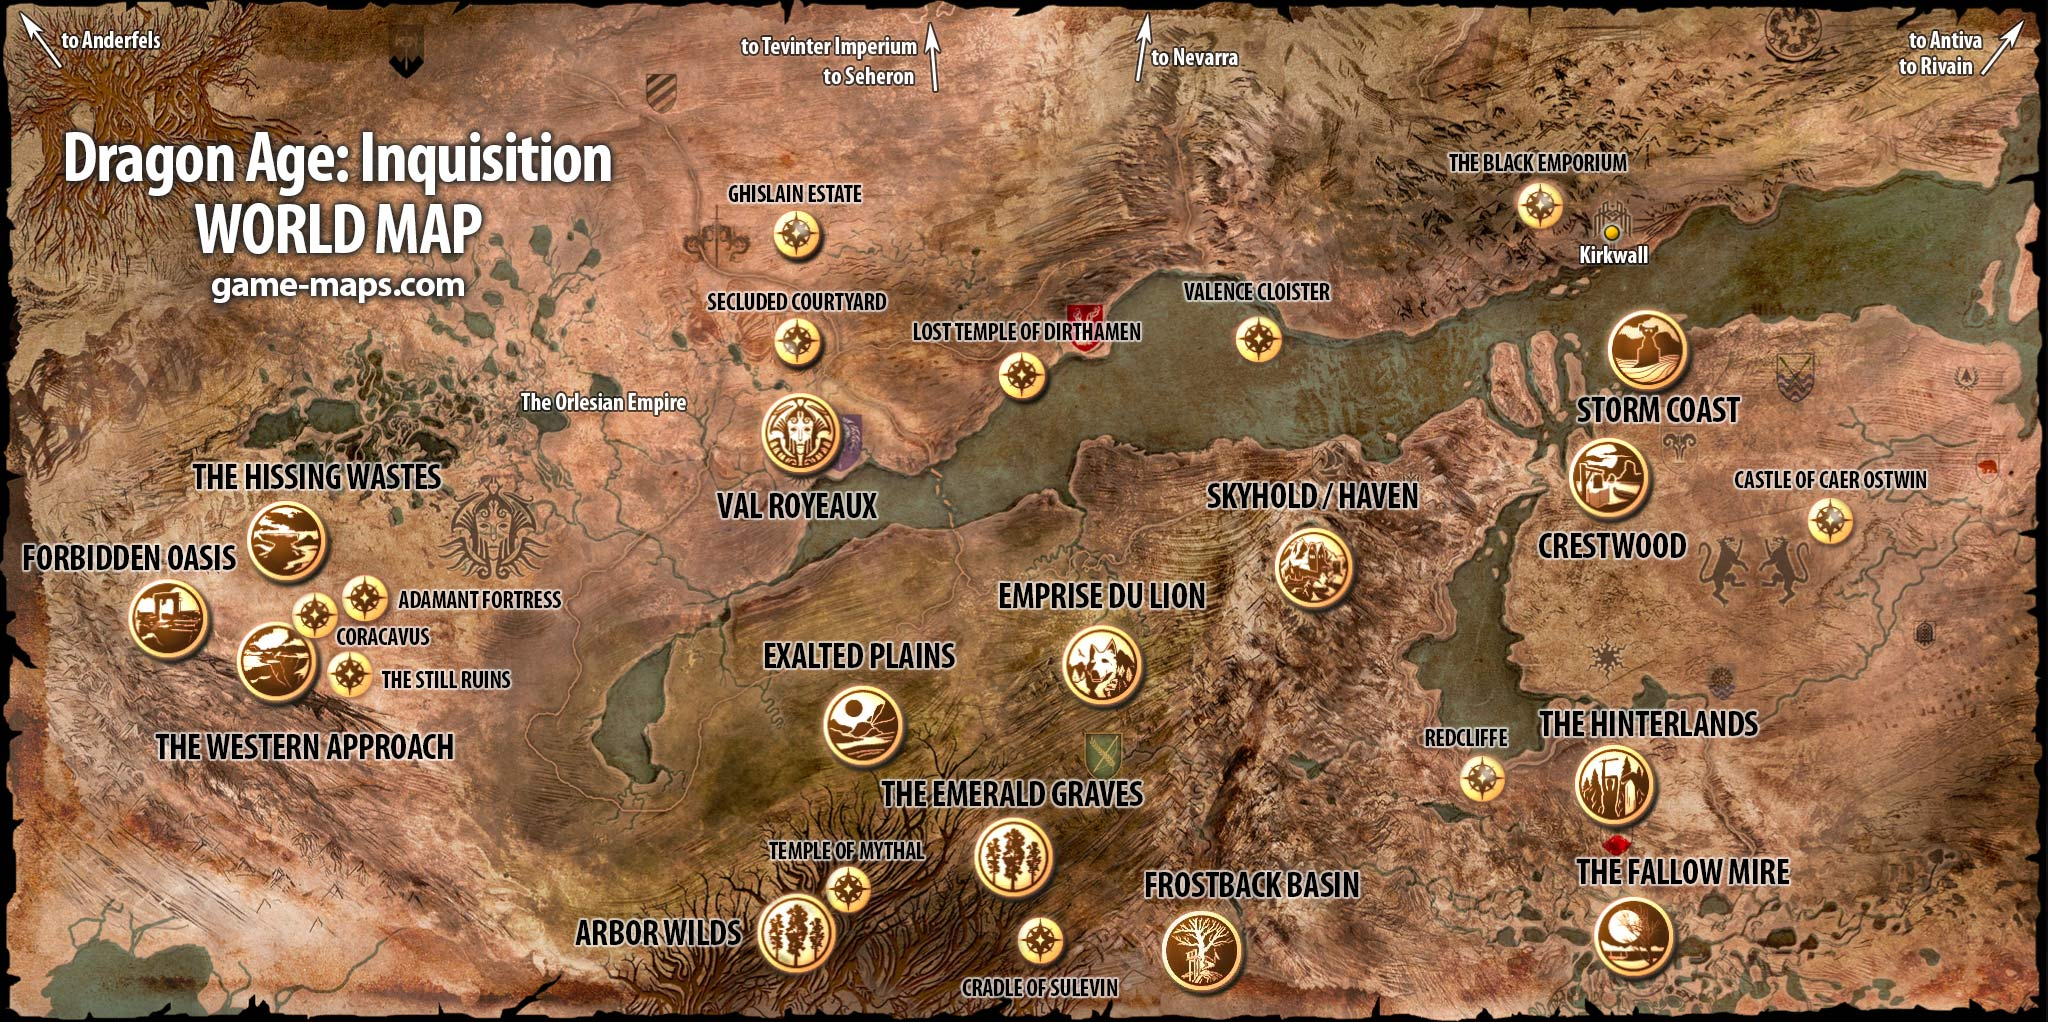 Dragon Age Inquisition Hinterlands Map Dragon Age Inquisition World